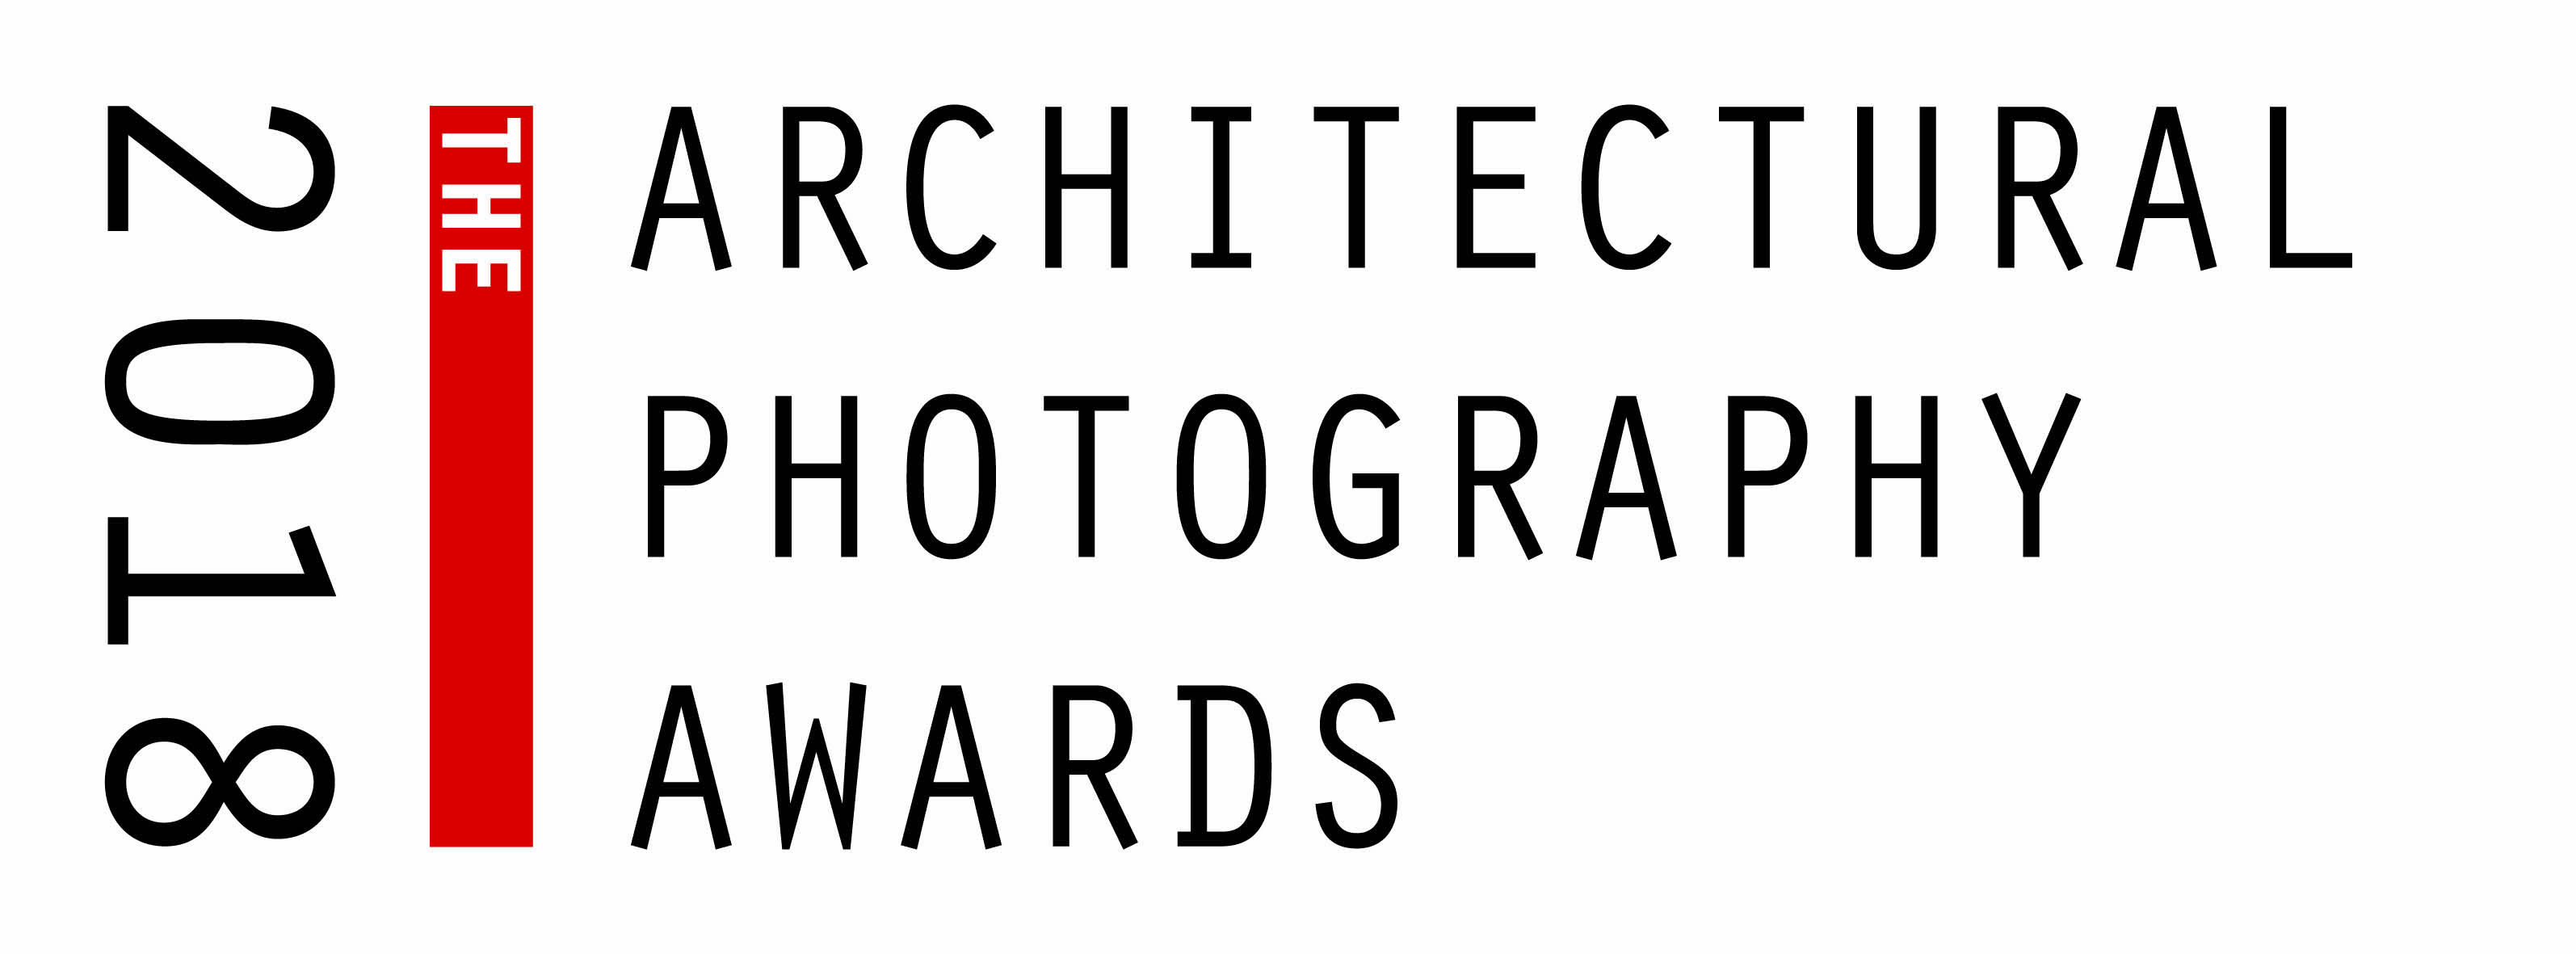 Architectural Photography Awards 2018 - logo